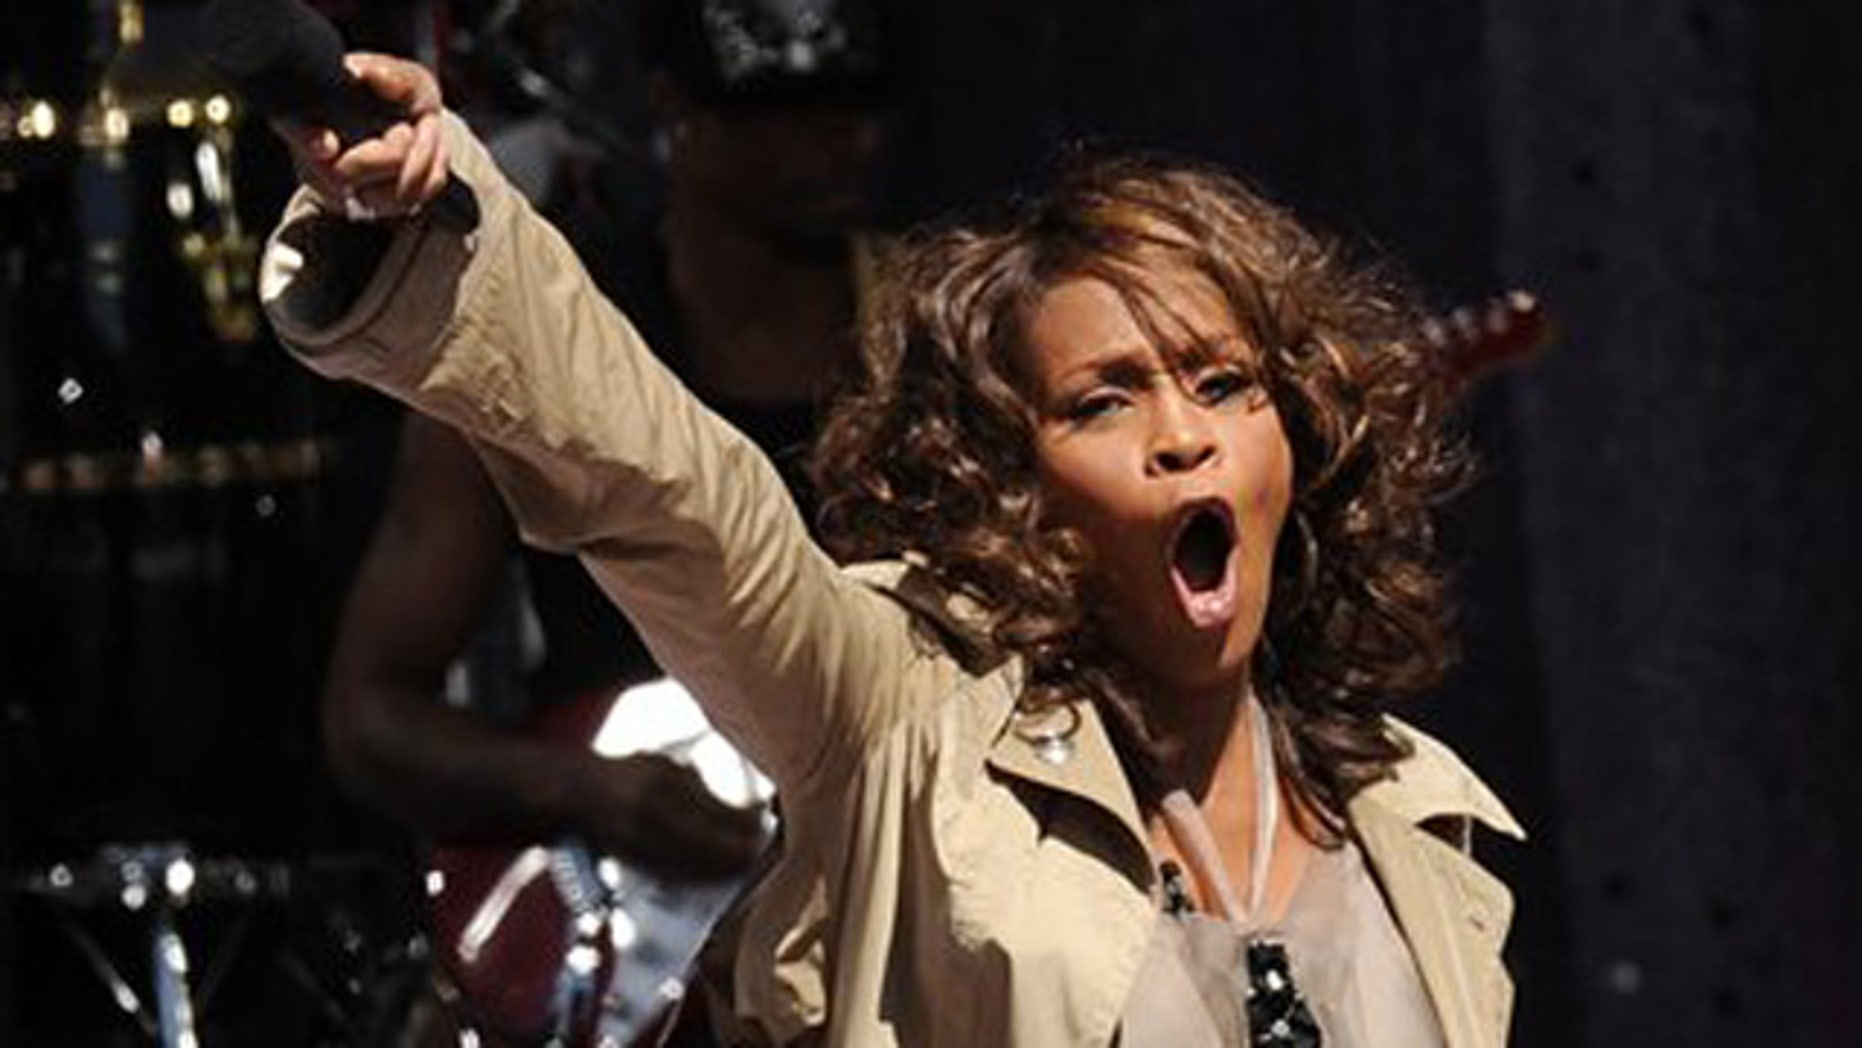 FILE - In this Sept. 1, 2009 file photo, Whitney Houston performs on 'Good Morning America' in Central Park in New York.  Whitney Houston, who reigned as pop music's queen until her majestic voice and regal image were ravaged by drug use, has died, Saturday, Feb. 11, 2012. She was 48. (AP Photo/Evan Agostini)